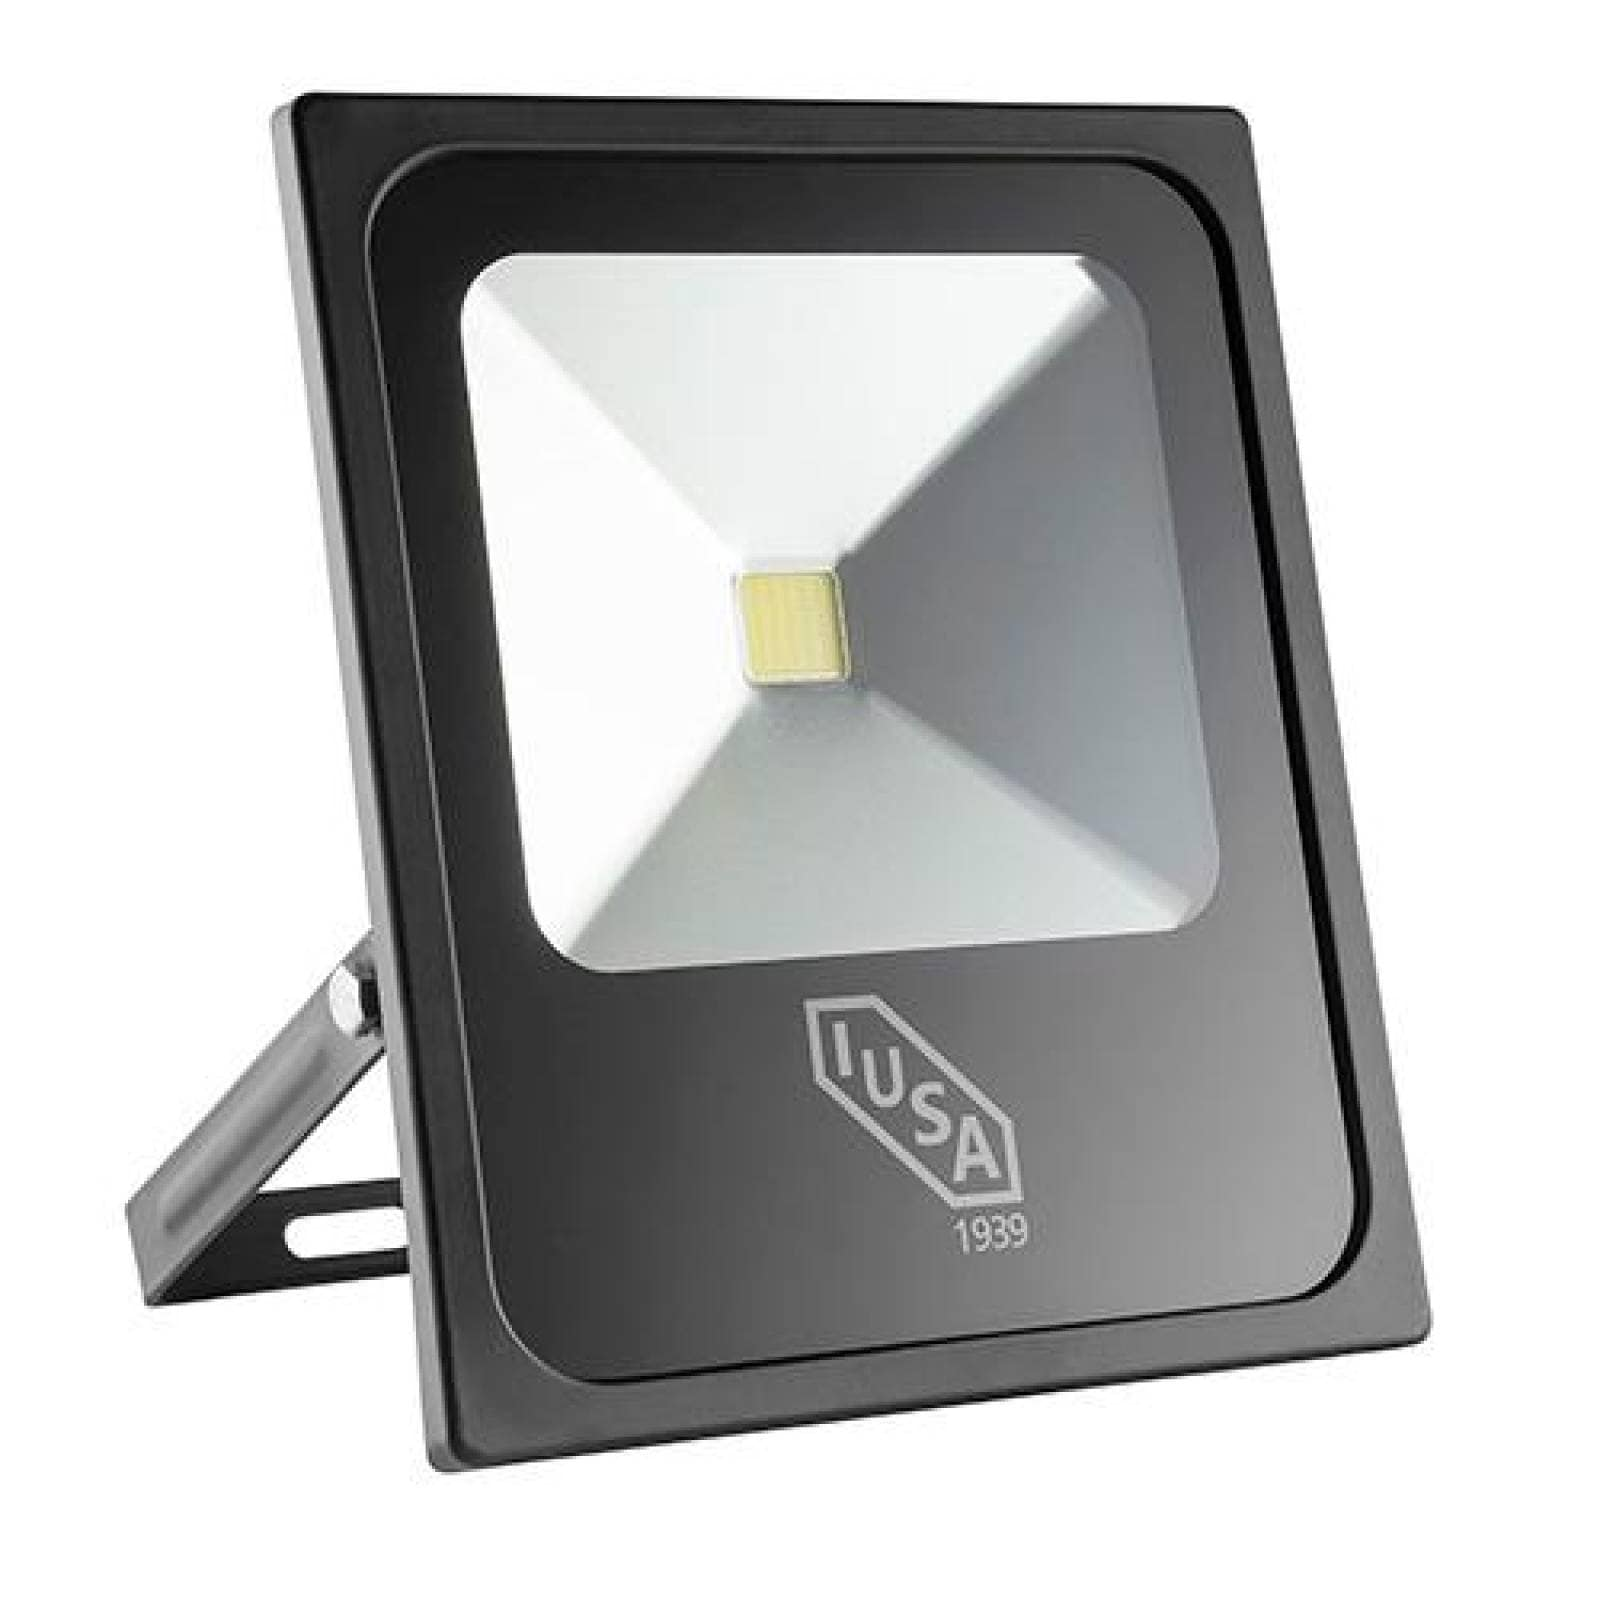 Reflector exterior slim LED 10 W, 6.5 K